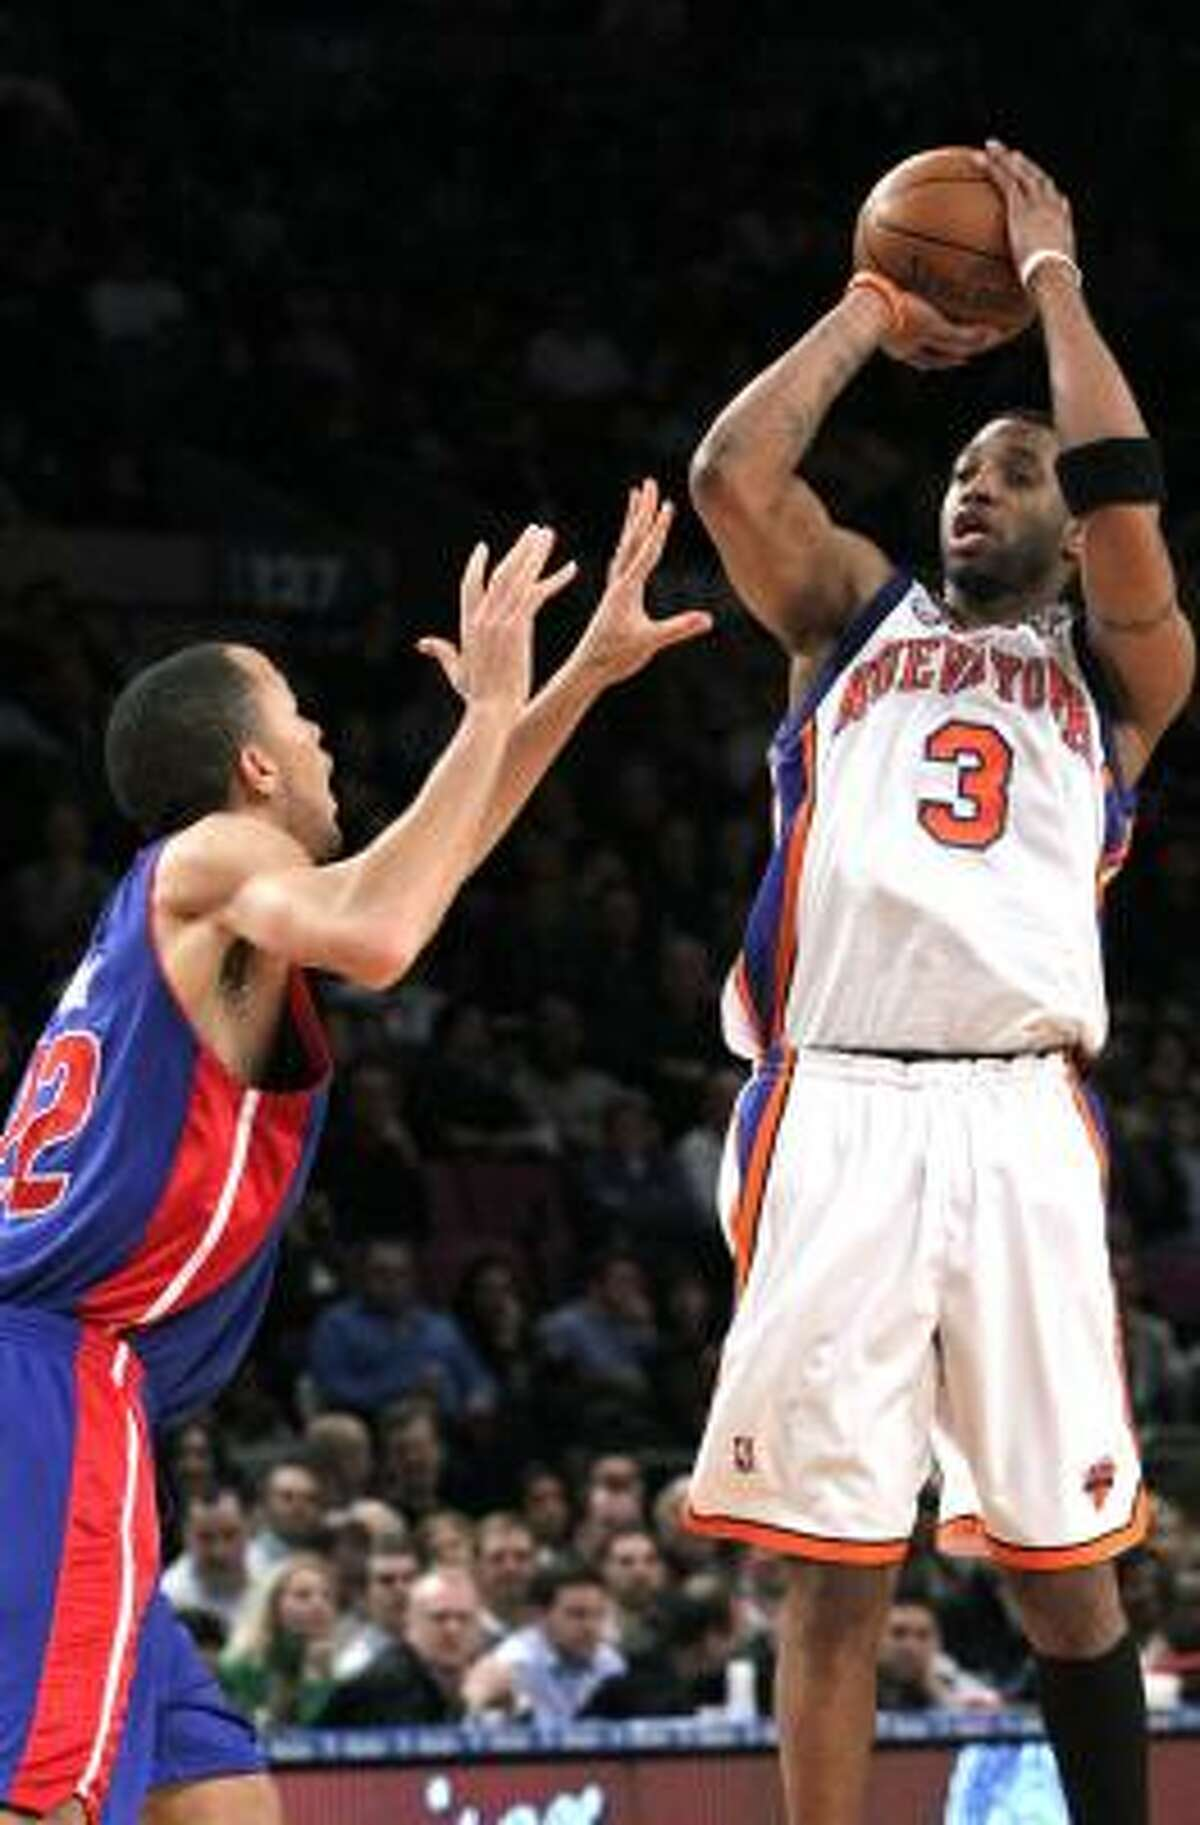 Tracy McGrady topped 20 points on three occasions since being traded to the Knicks.